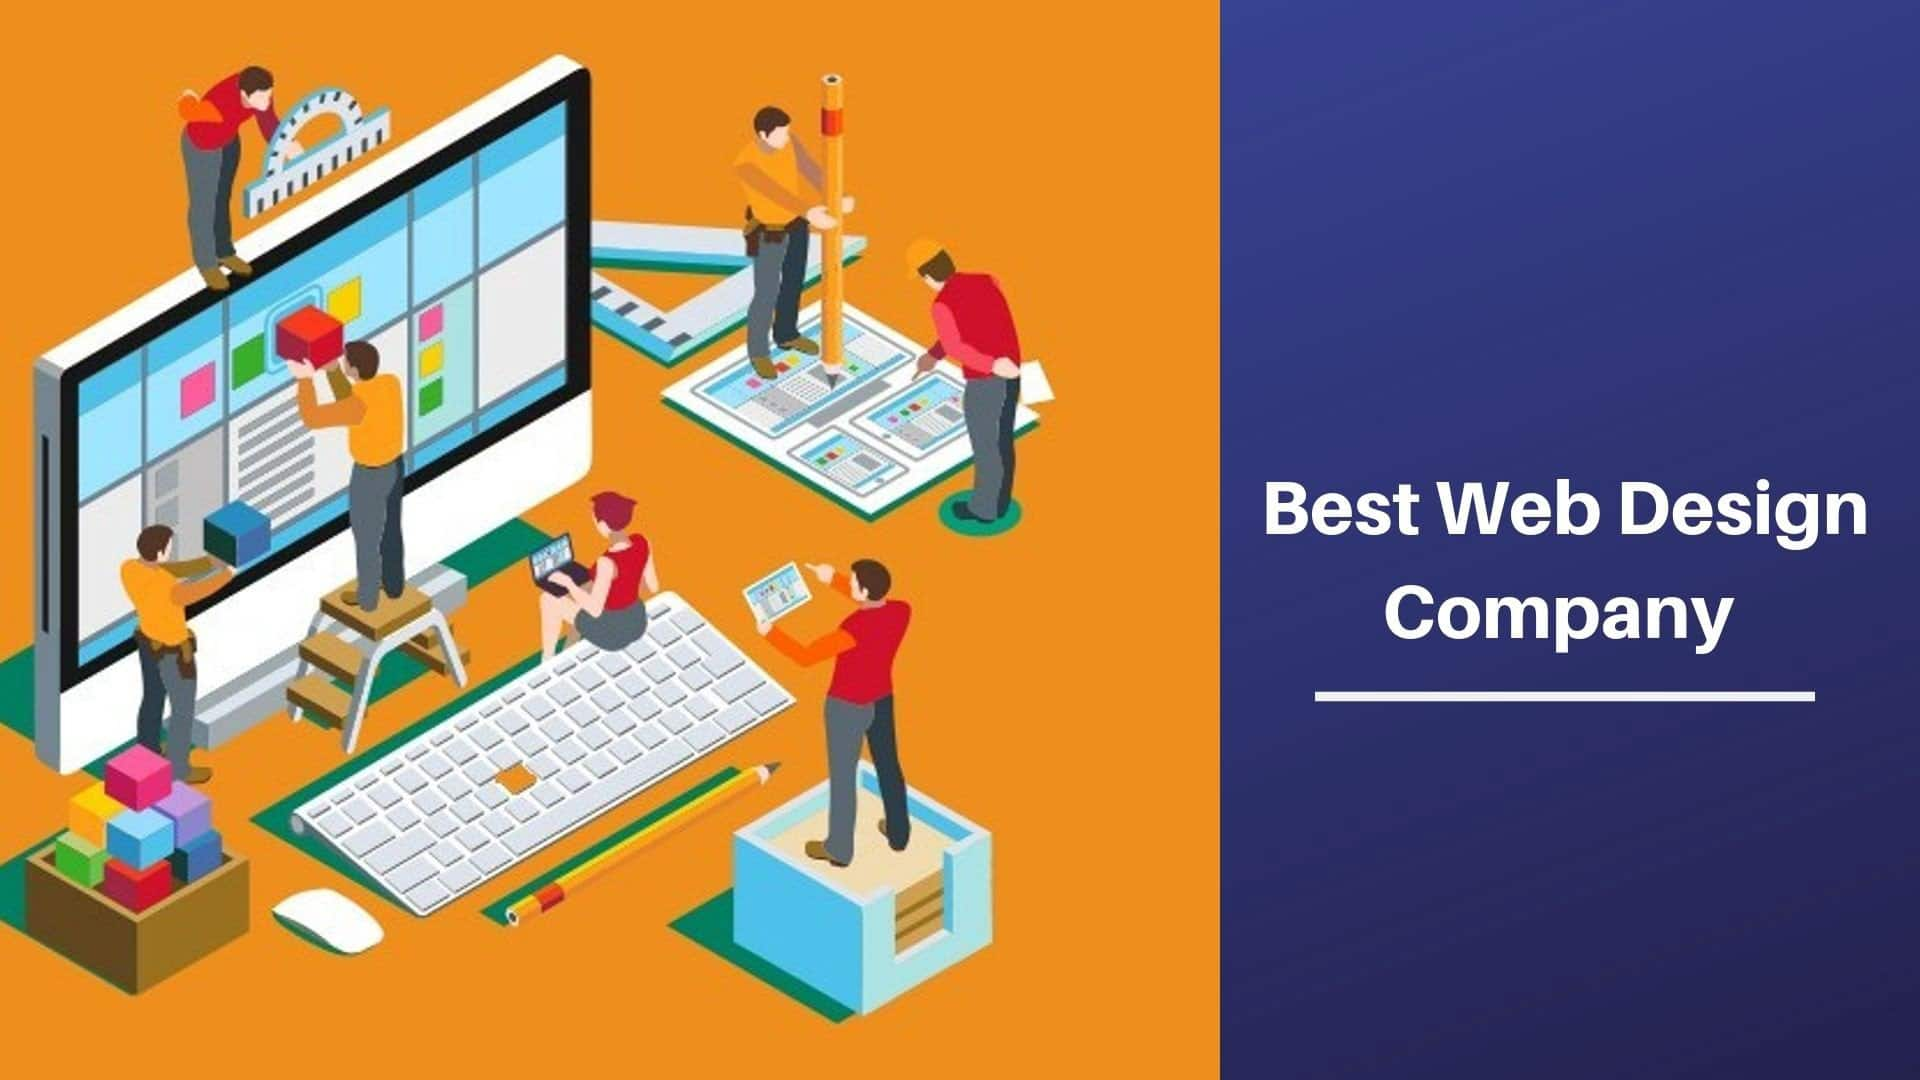 What You Must Look for When Choosing Website Design Company